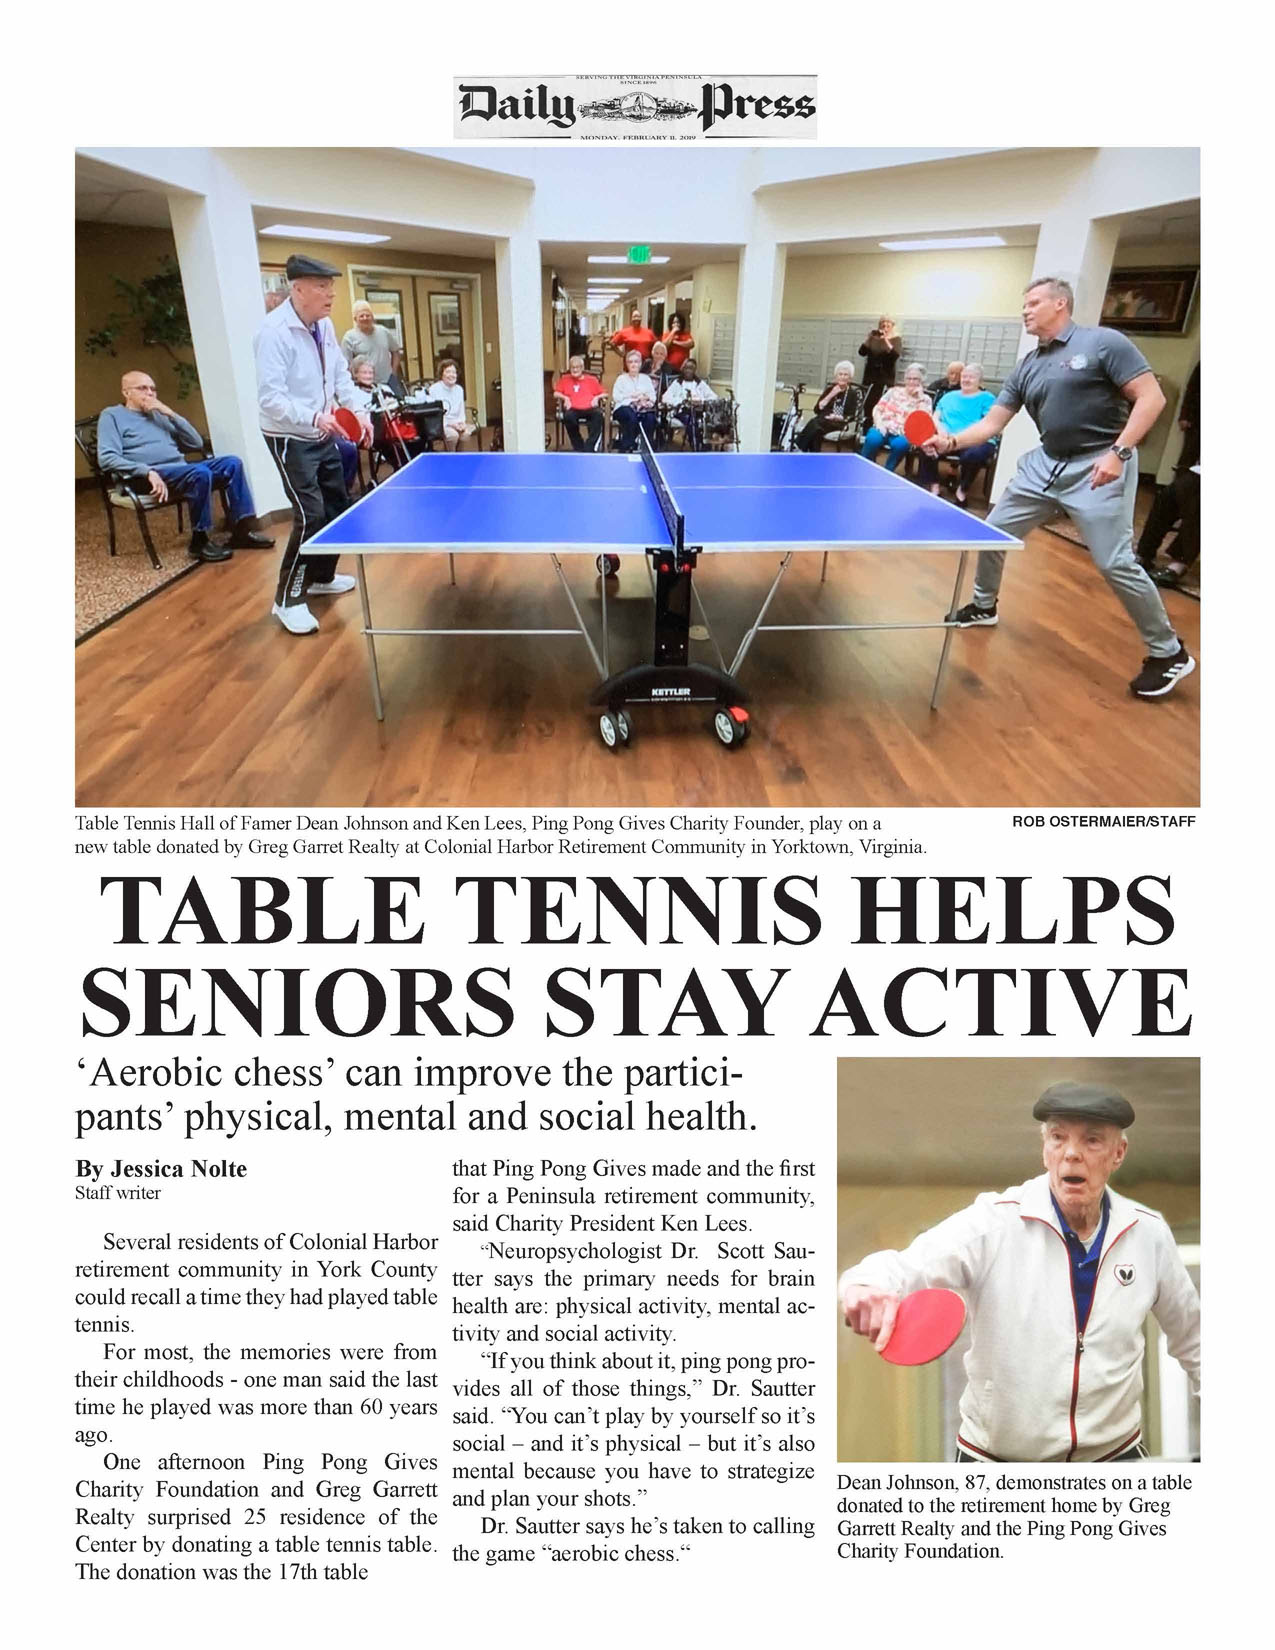 """Why has Dr. Sautter taken to referring to table tennis as """"aerobic chess?"""""""